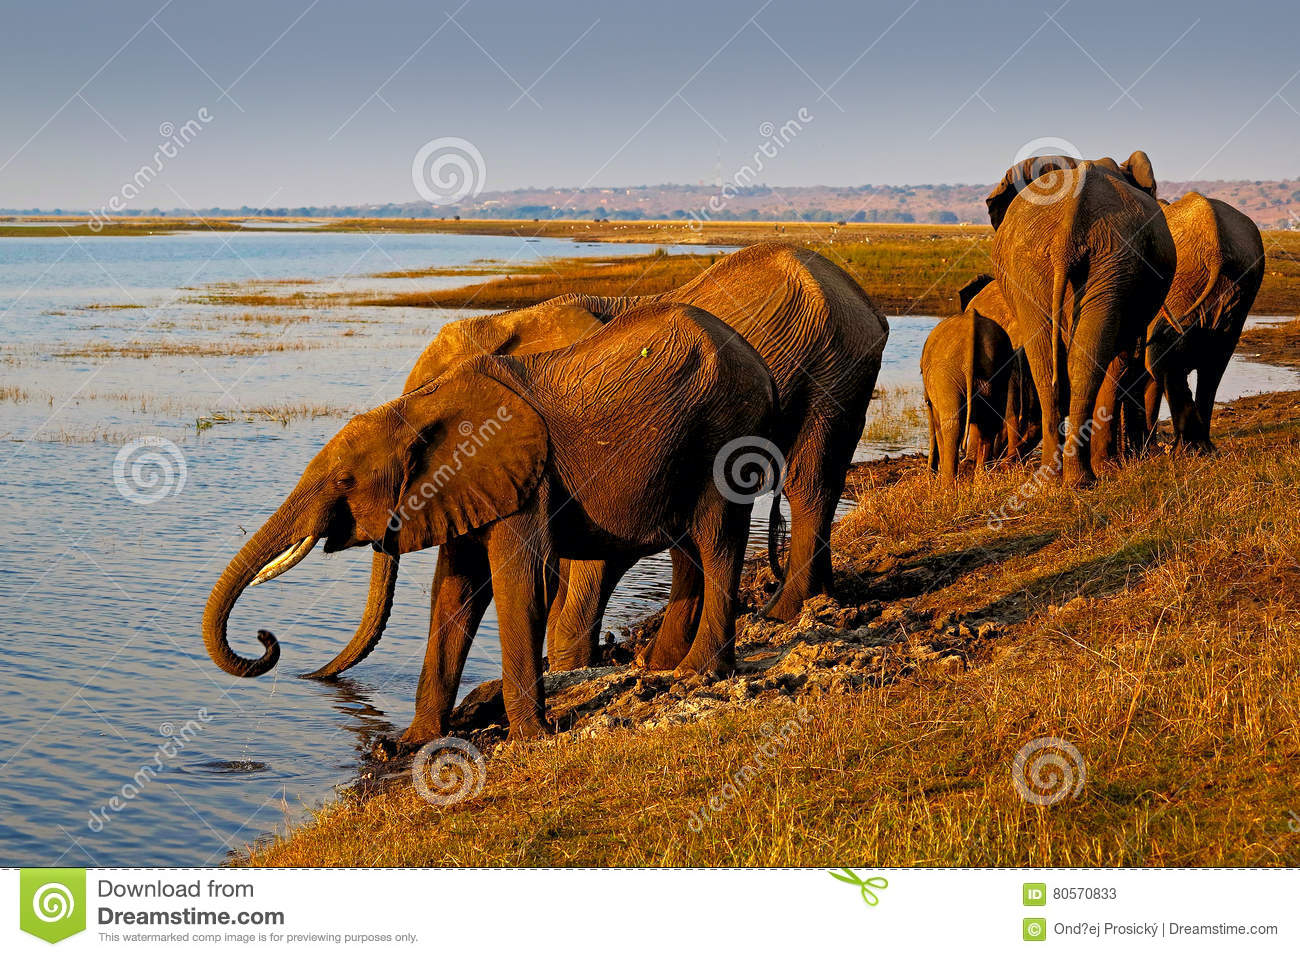 Elephants drinking water. African elephants drinking at a waterhole lifting their trunks, Chobe National park, Botswana, Africa.